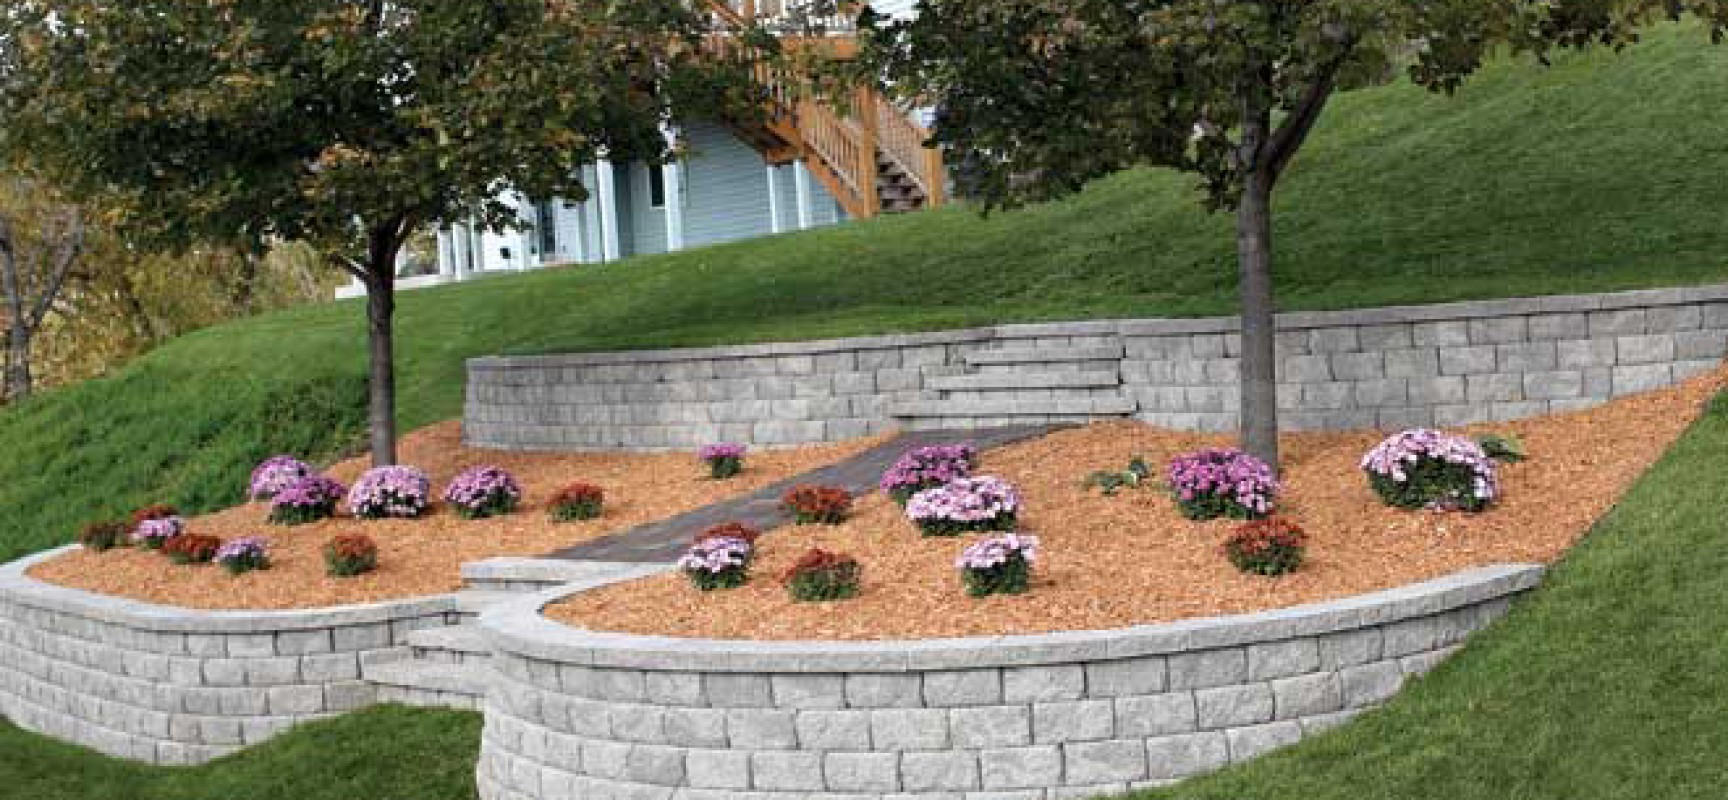 How To Build Retaining Walls On Slopes 10 Simple Steps